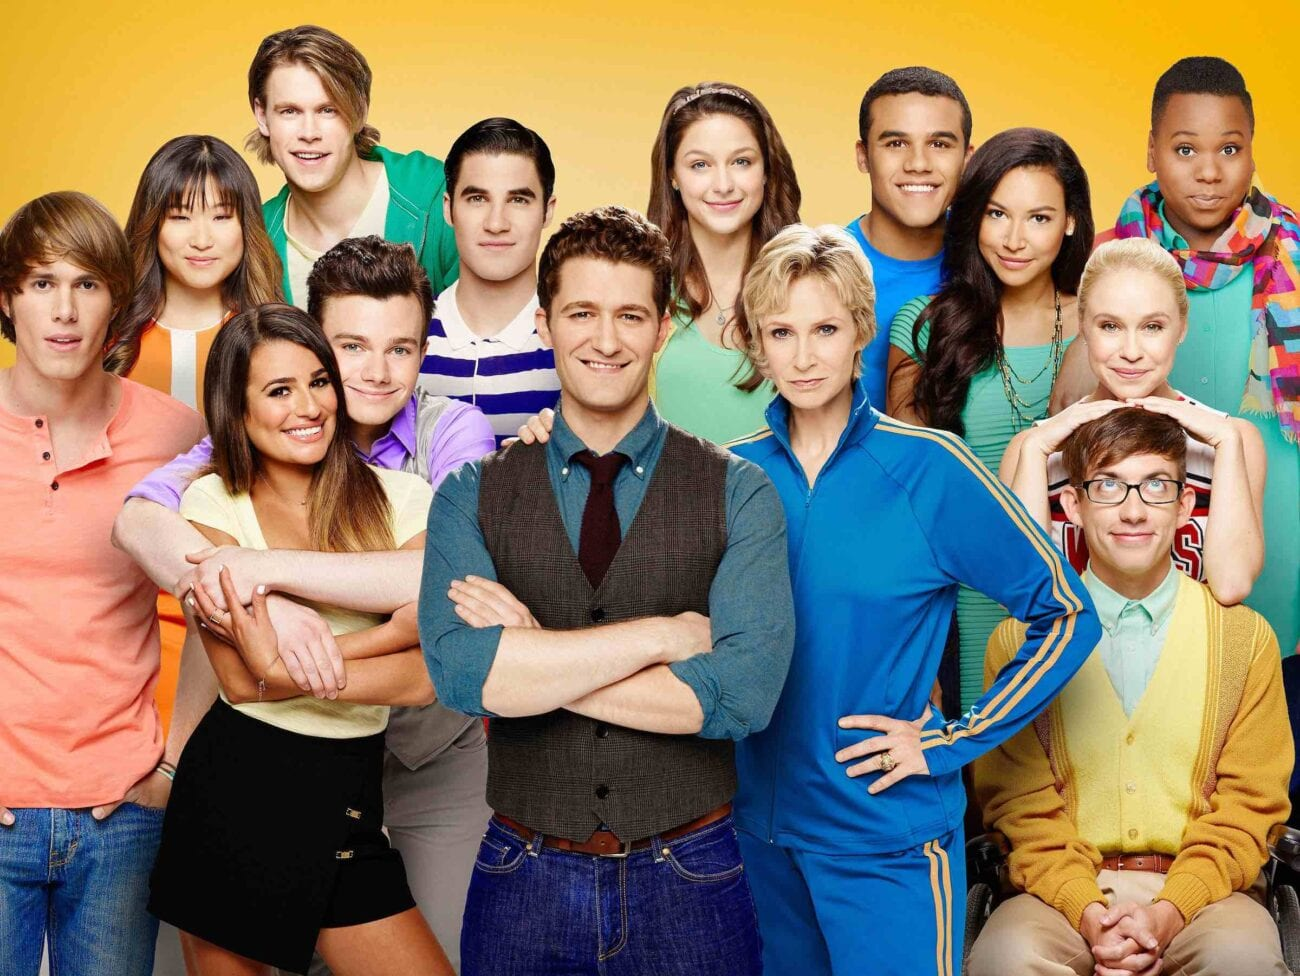 """Bad things have popped up a lot around those involved with 'Glee' and its cast. Here's everything we know about the alleged """"curse""""."""